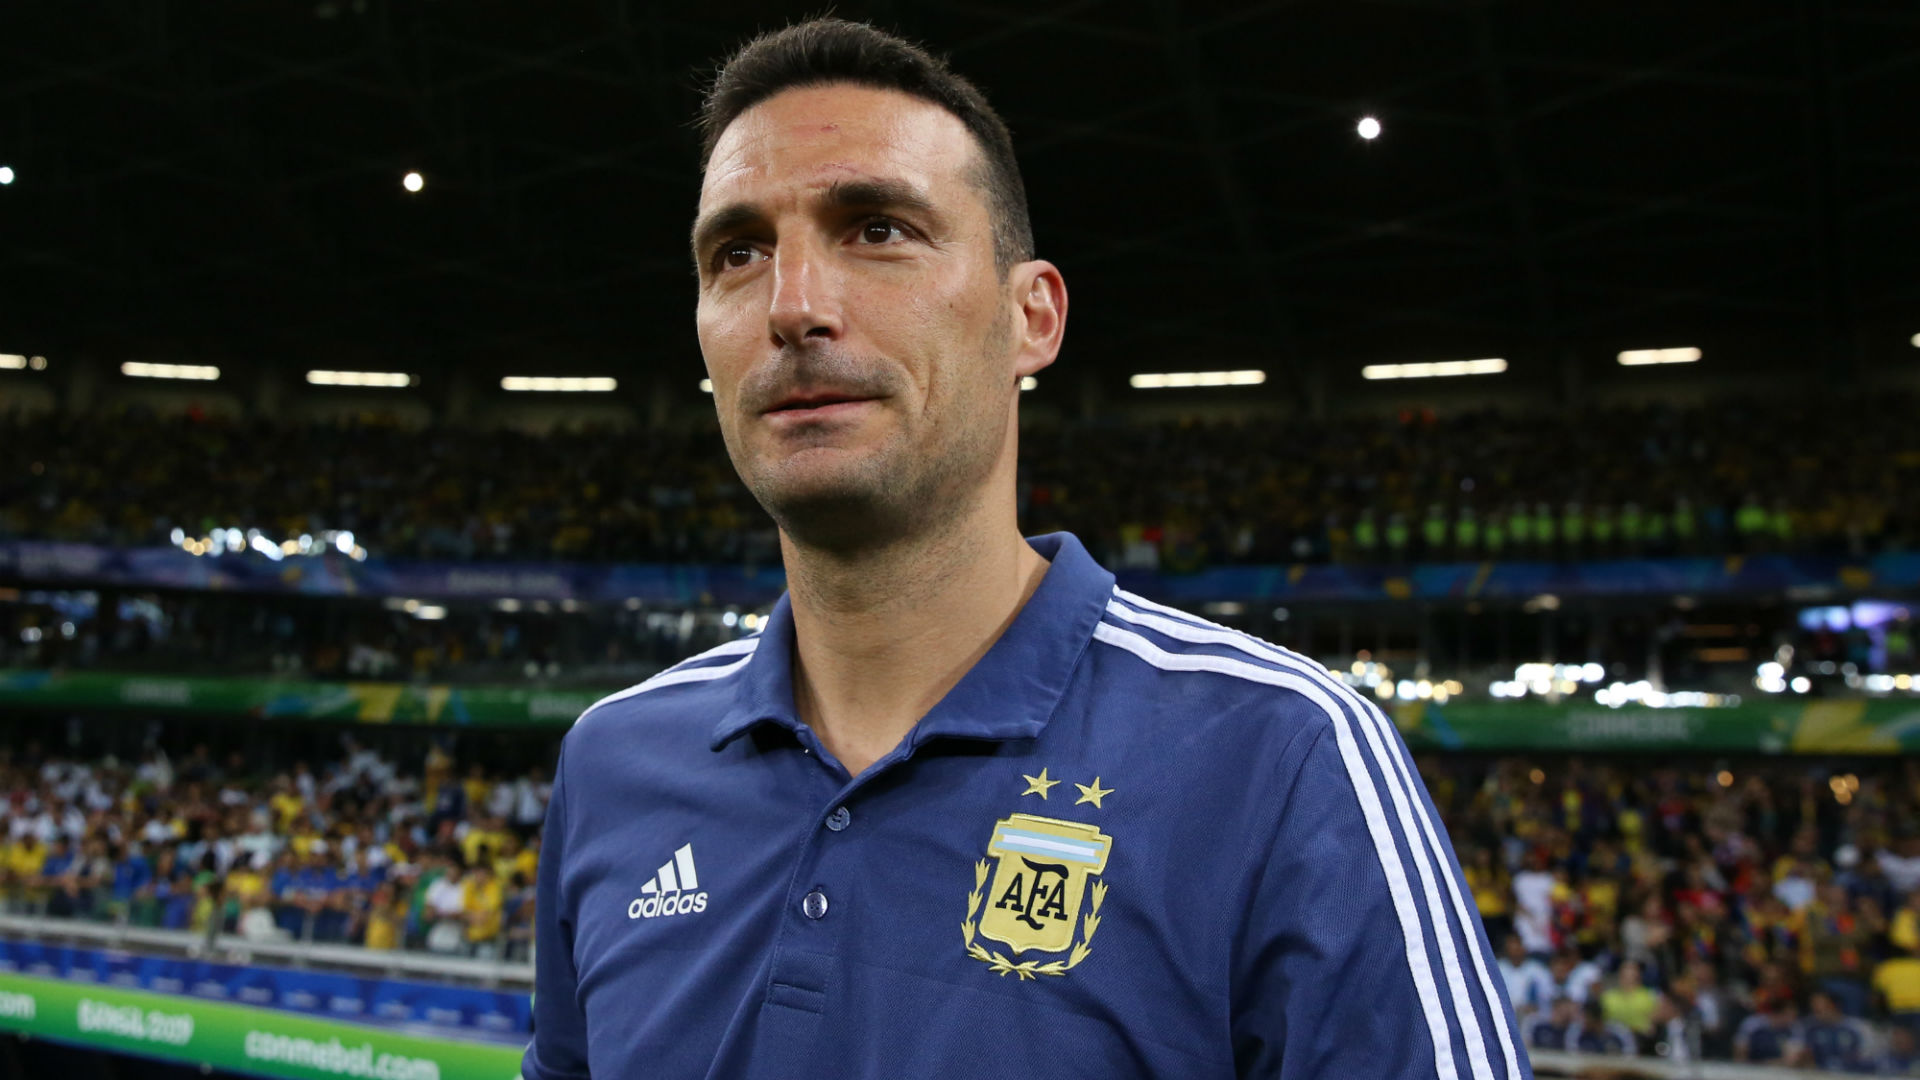 Scaloni credits Argentina players for giving 'their lives for the shirt' against Brazil